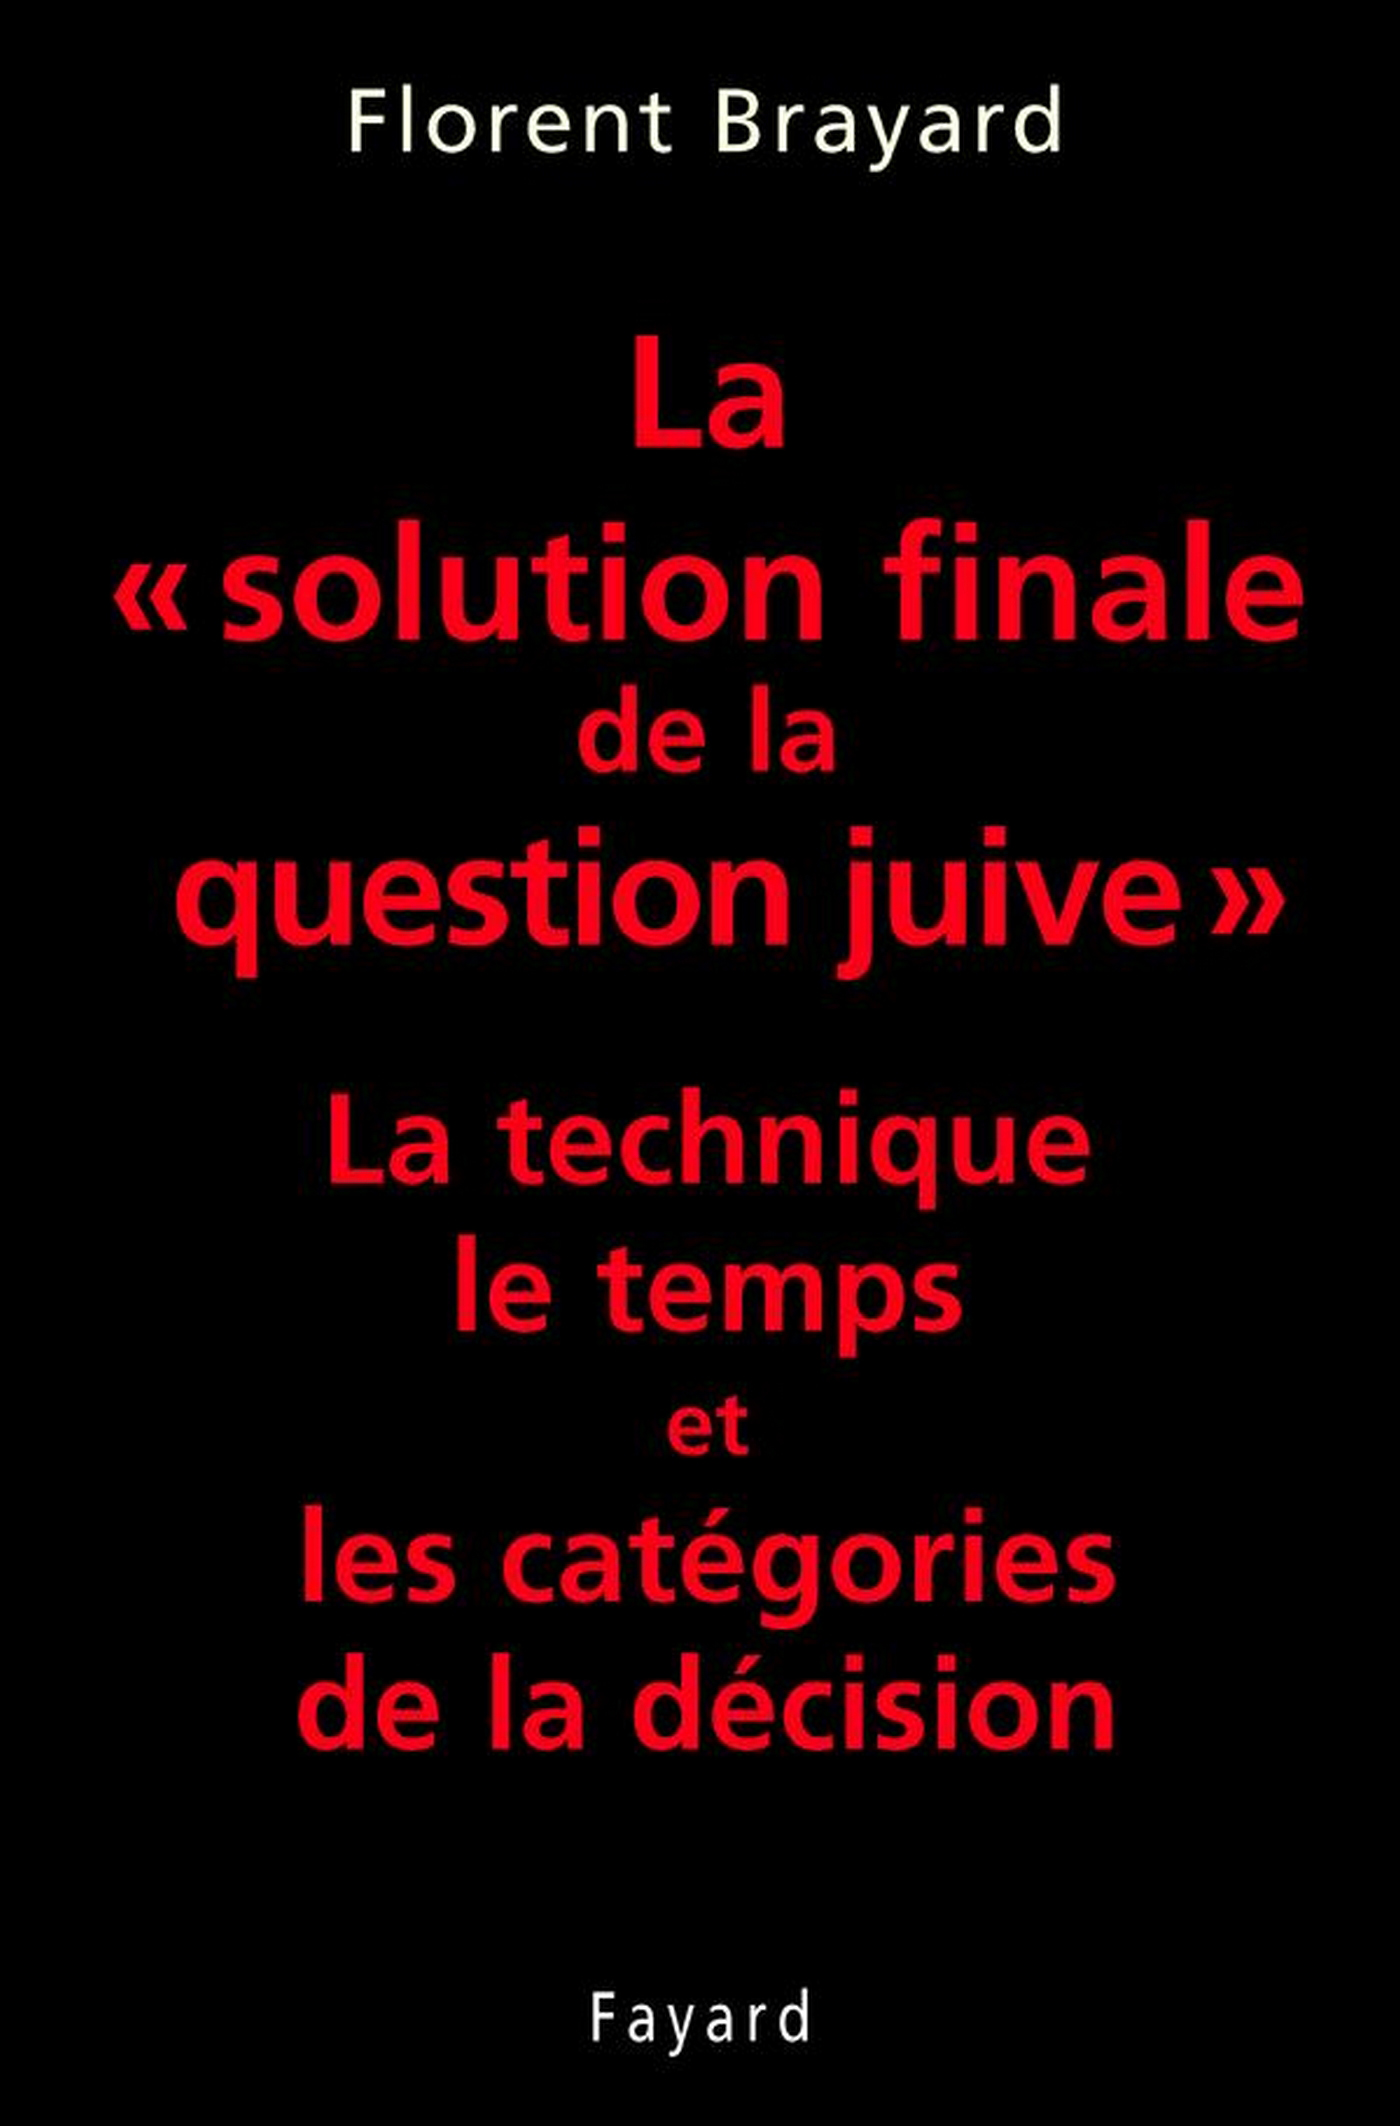 La «solution finale de la question juive»